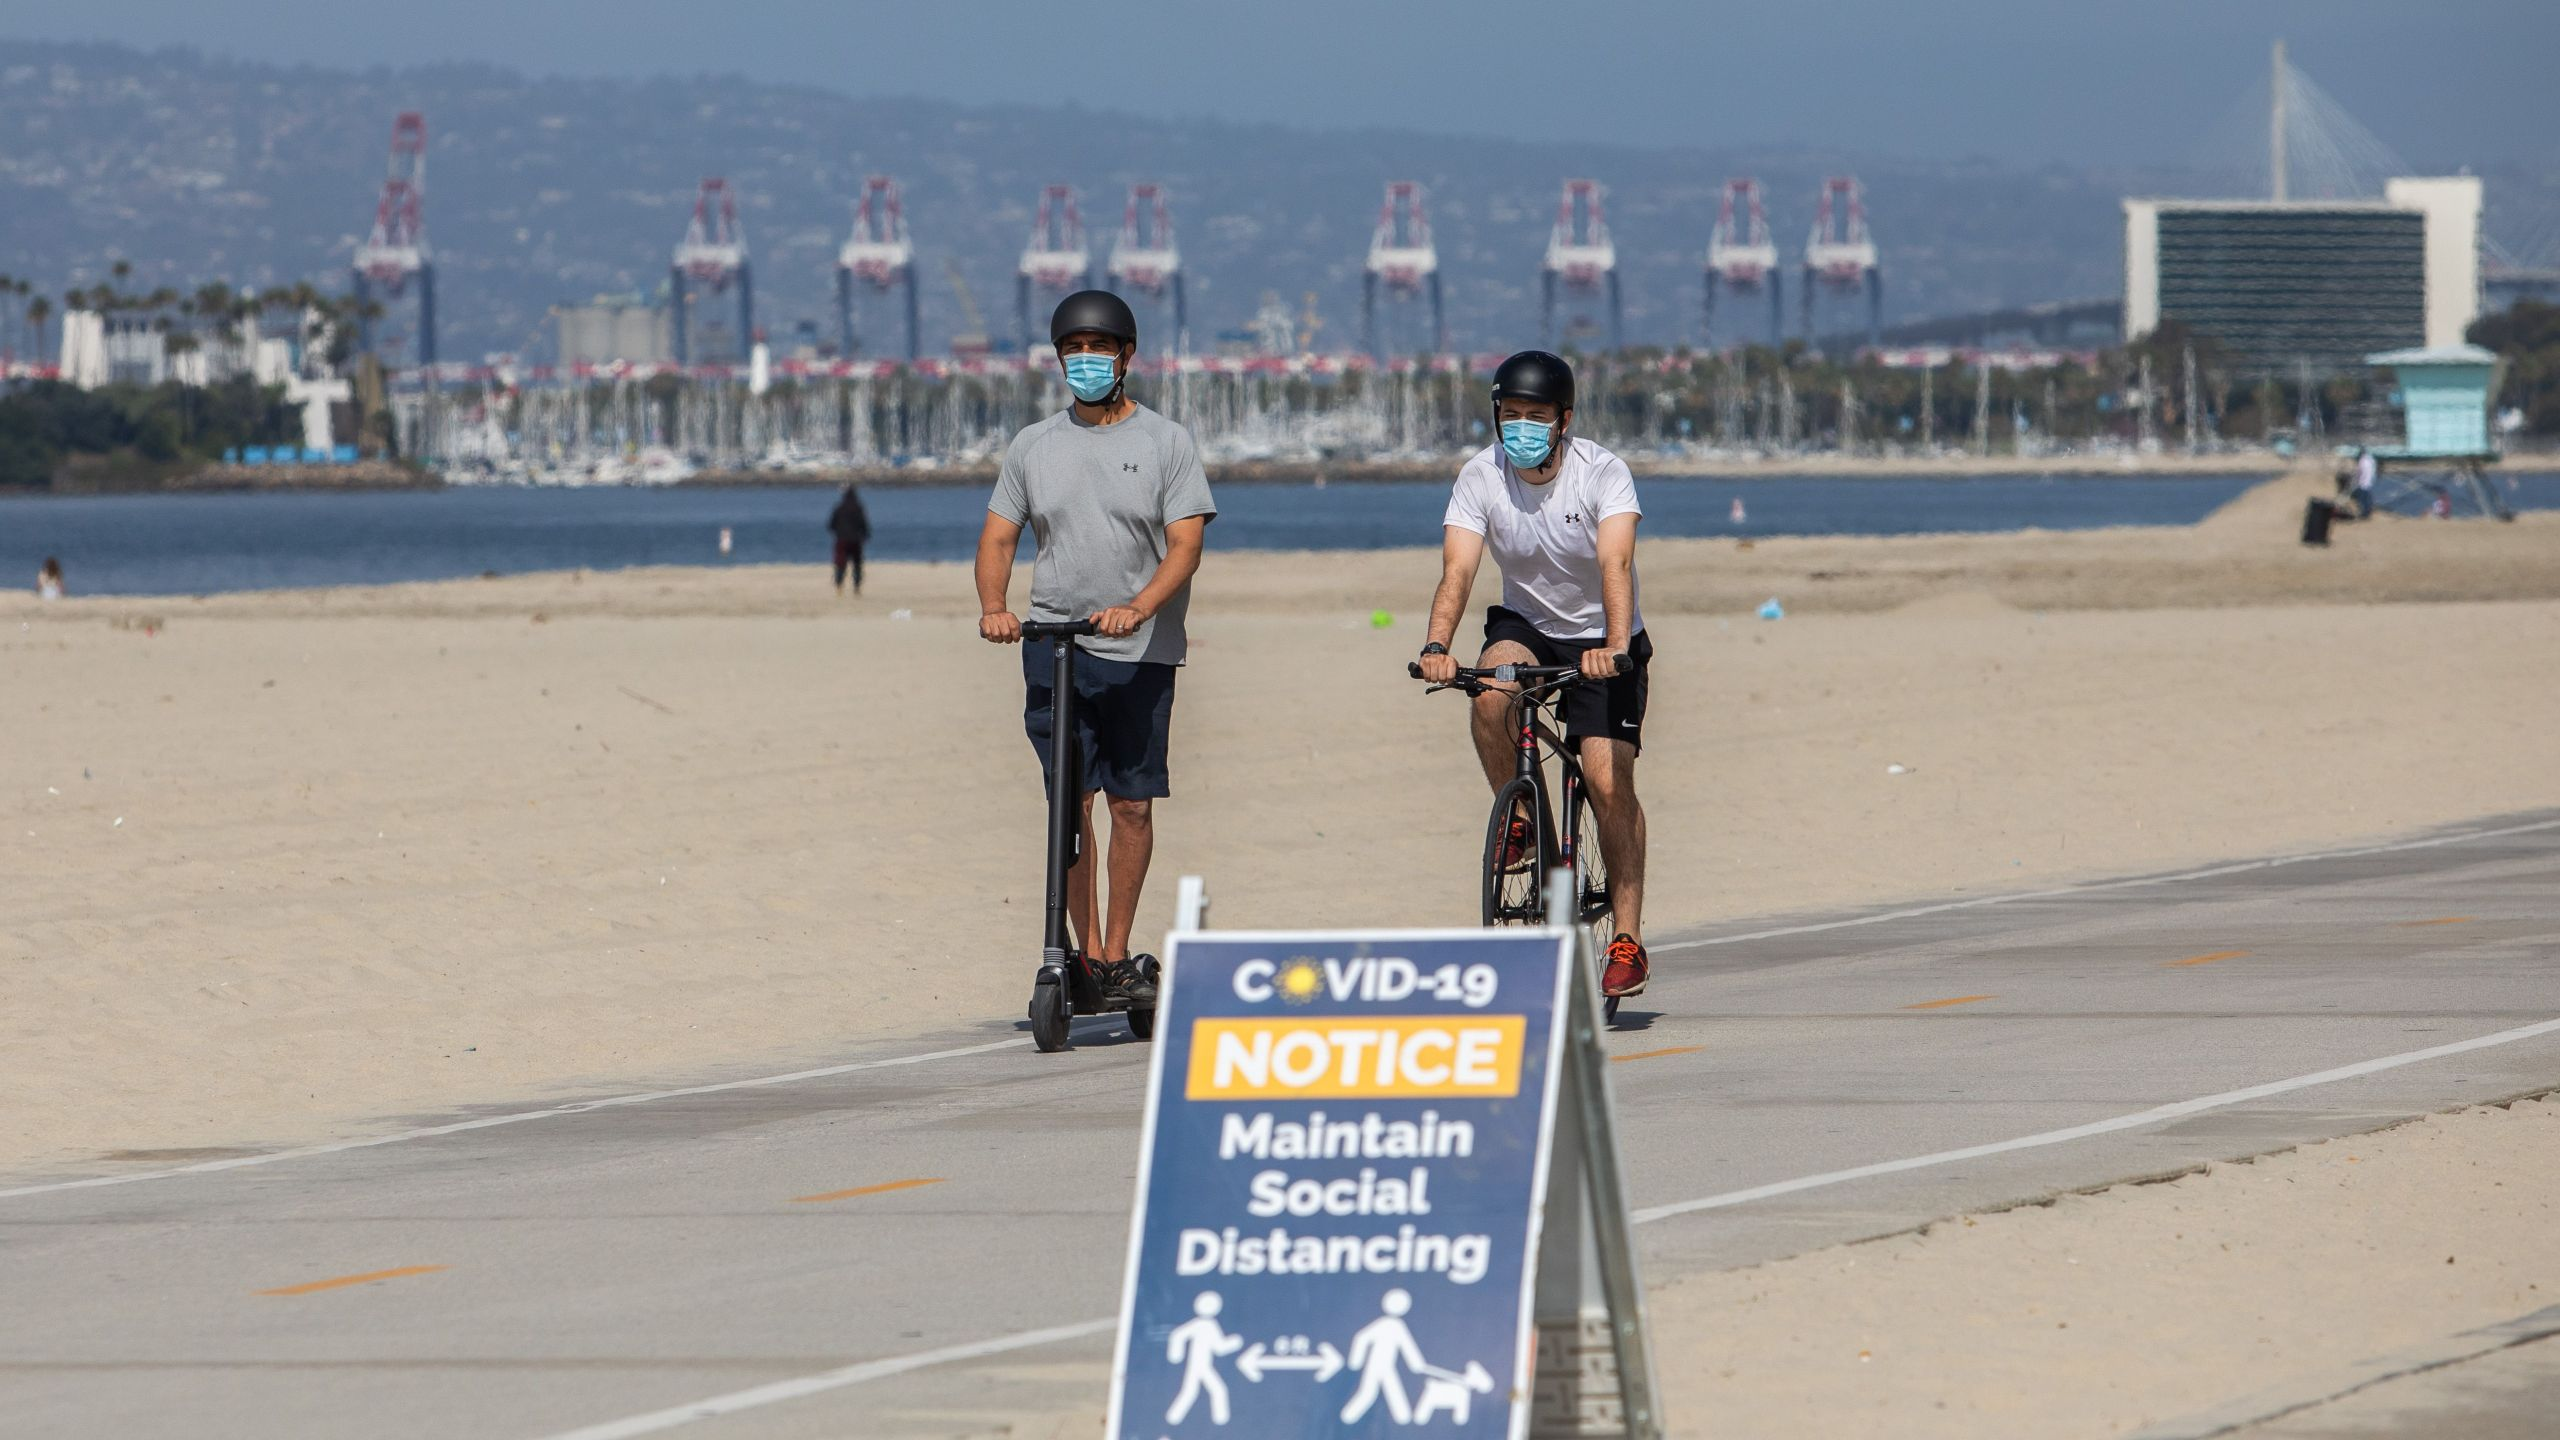 Men wearing facemasks ride a scooter and a bike near a notice about maintaining social distance on the beach in Long Beach on July 14, 2020. (APU GOMES/AFP via Getty Images)